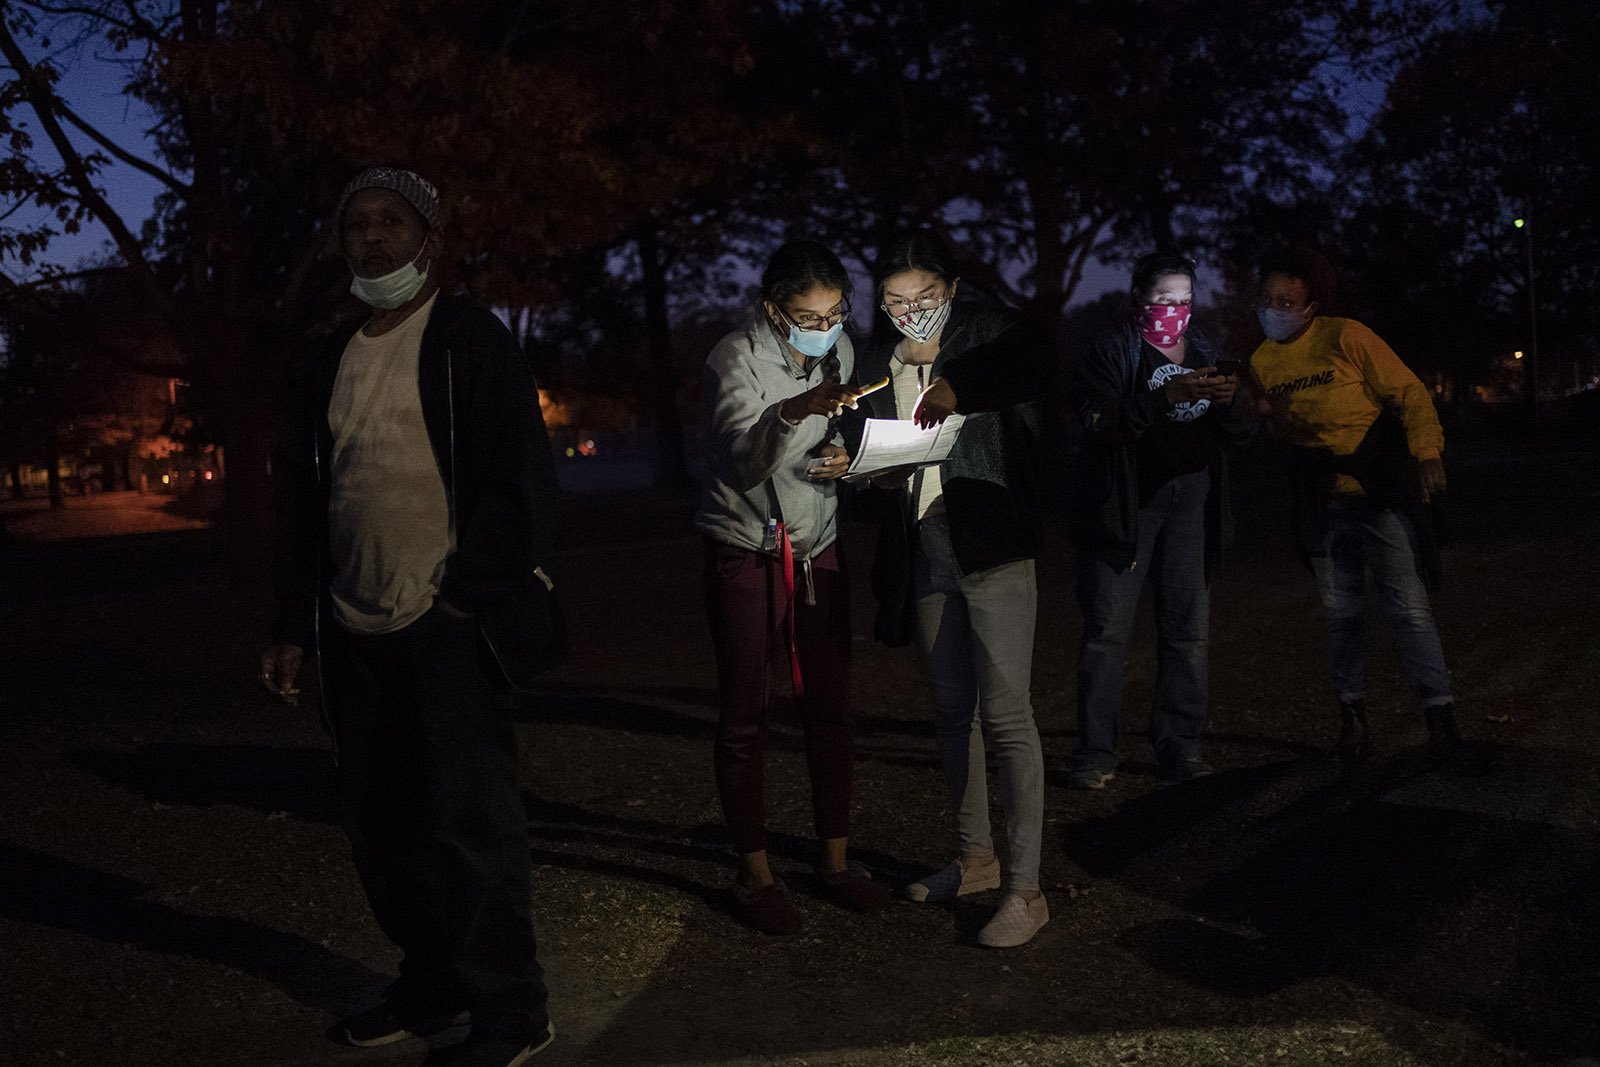 Voters wait in line at a polling center on Election Day, in Kenosha, Wisconsin.